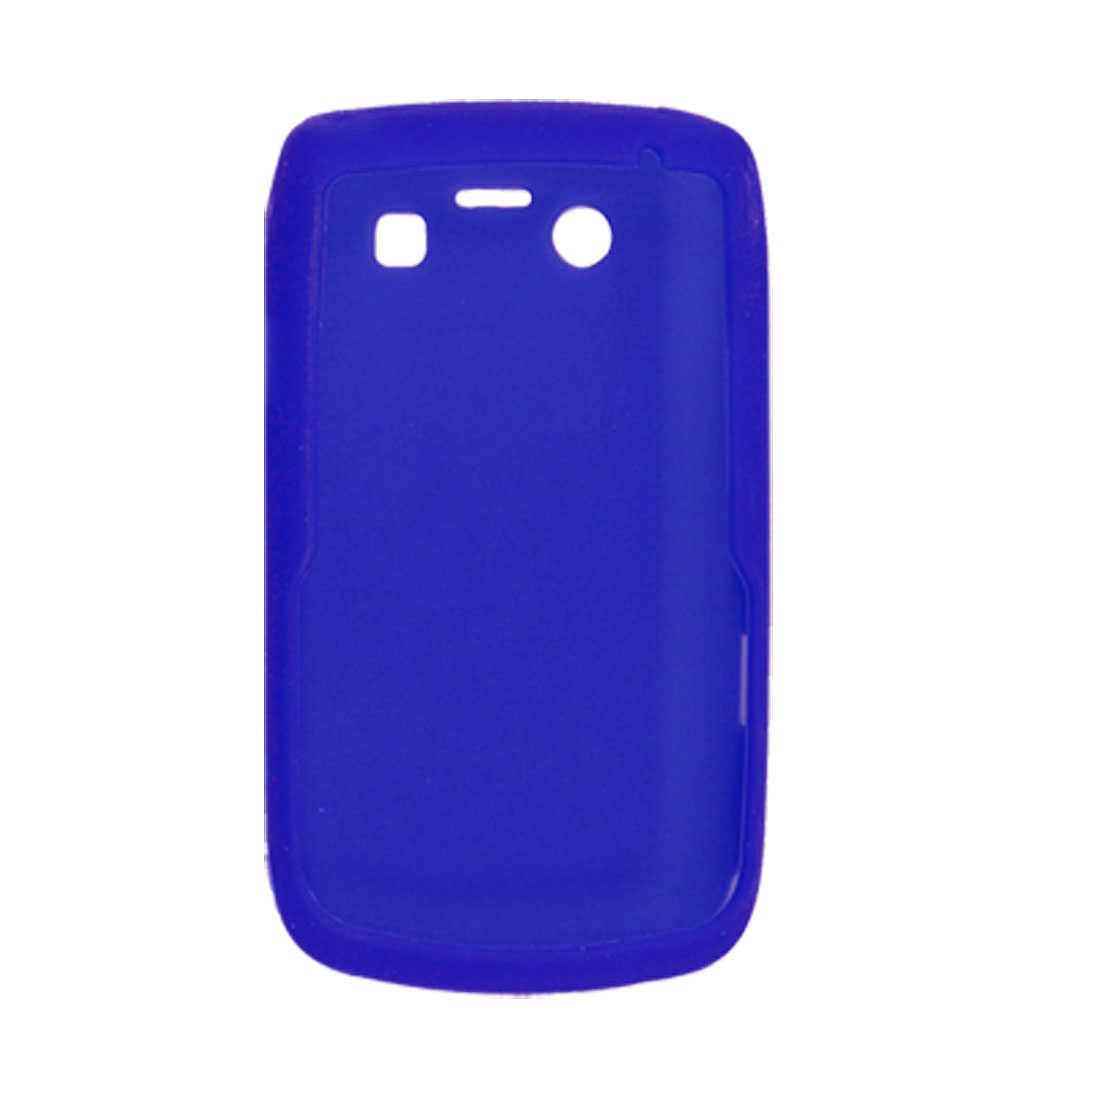 Blue Protective Silicone Skin Case for BlackBerry 9700 9020